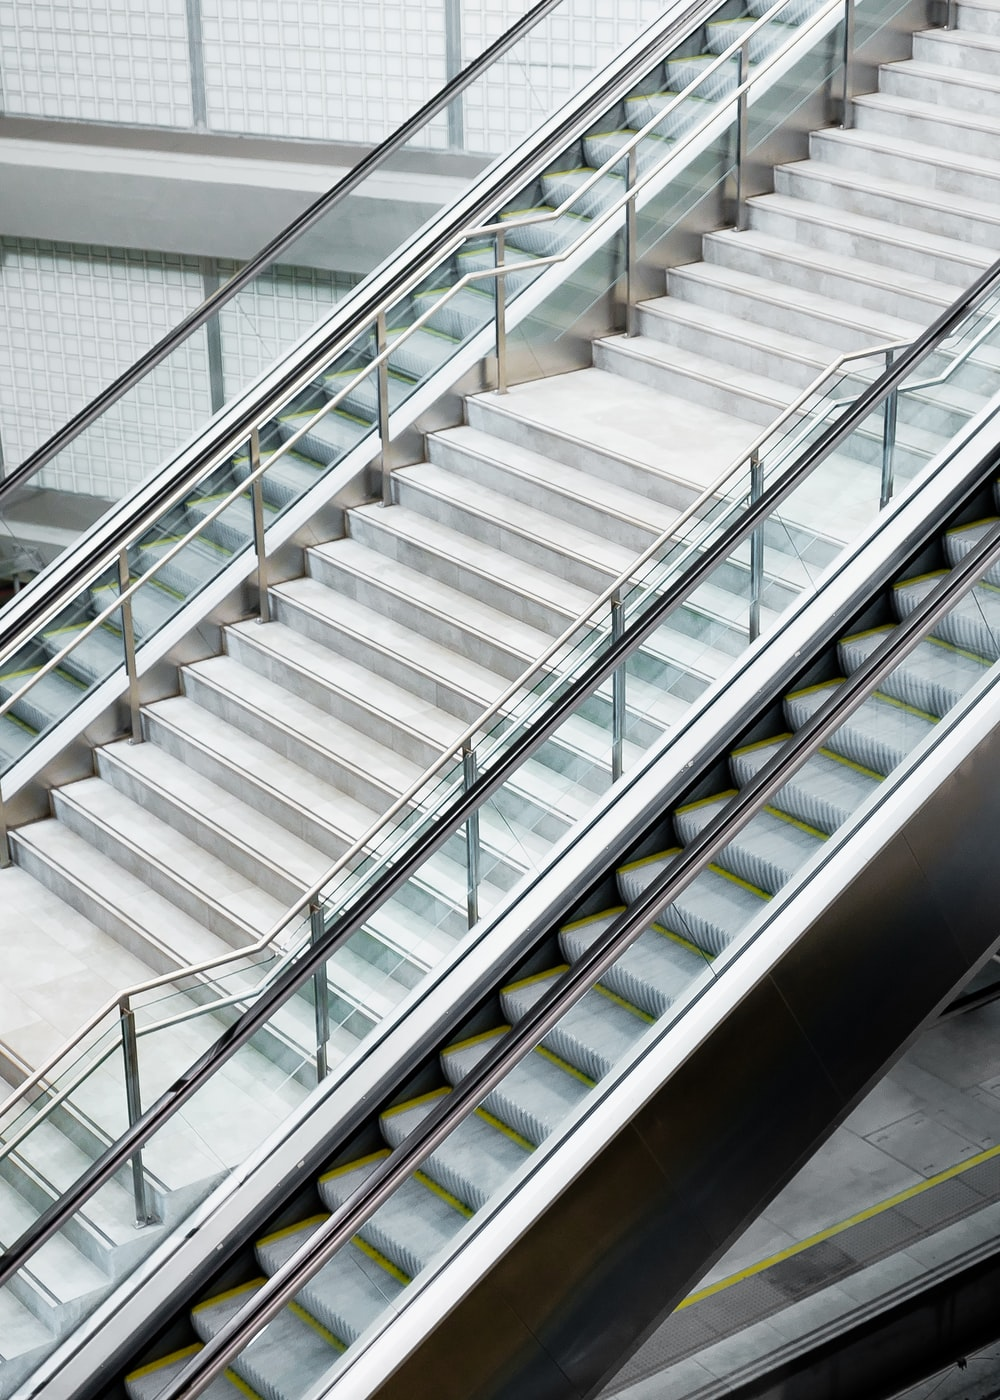 architecture photography of staircase during daytime